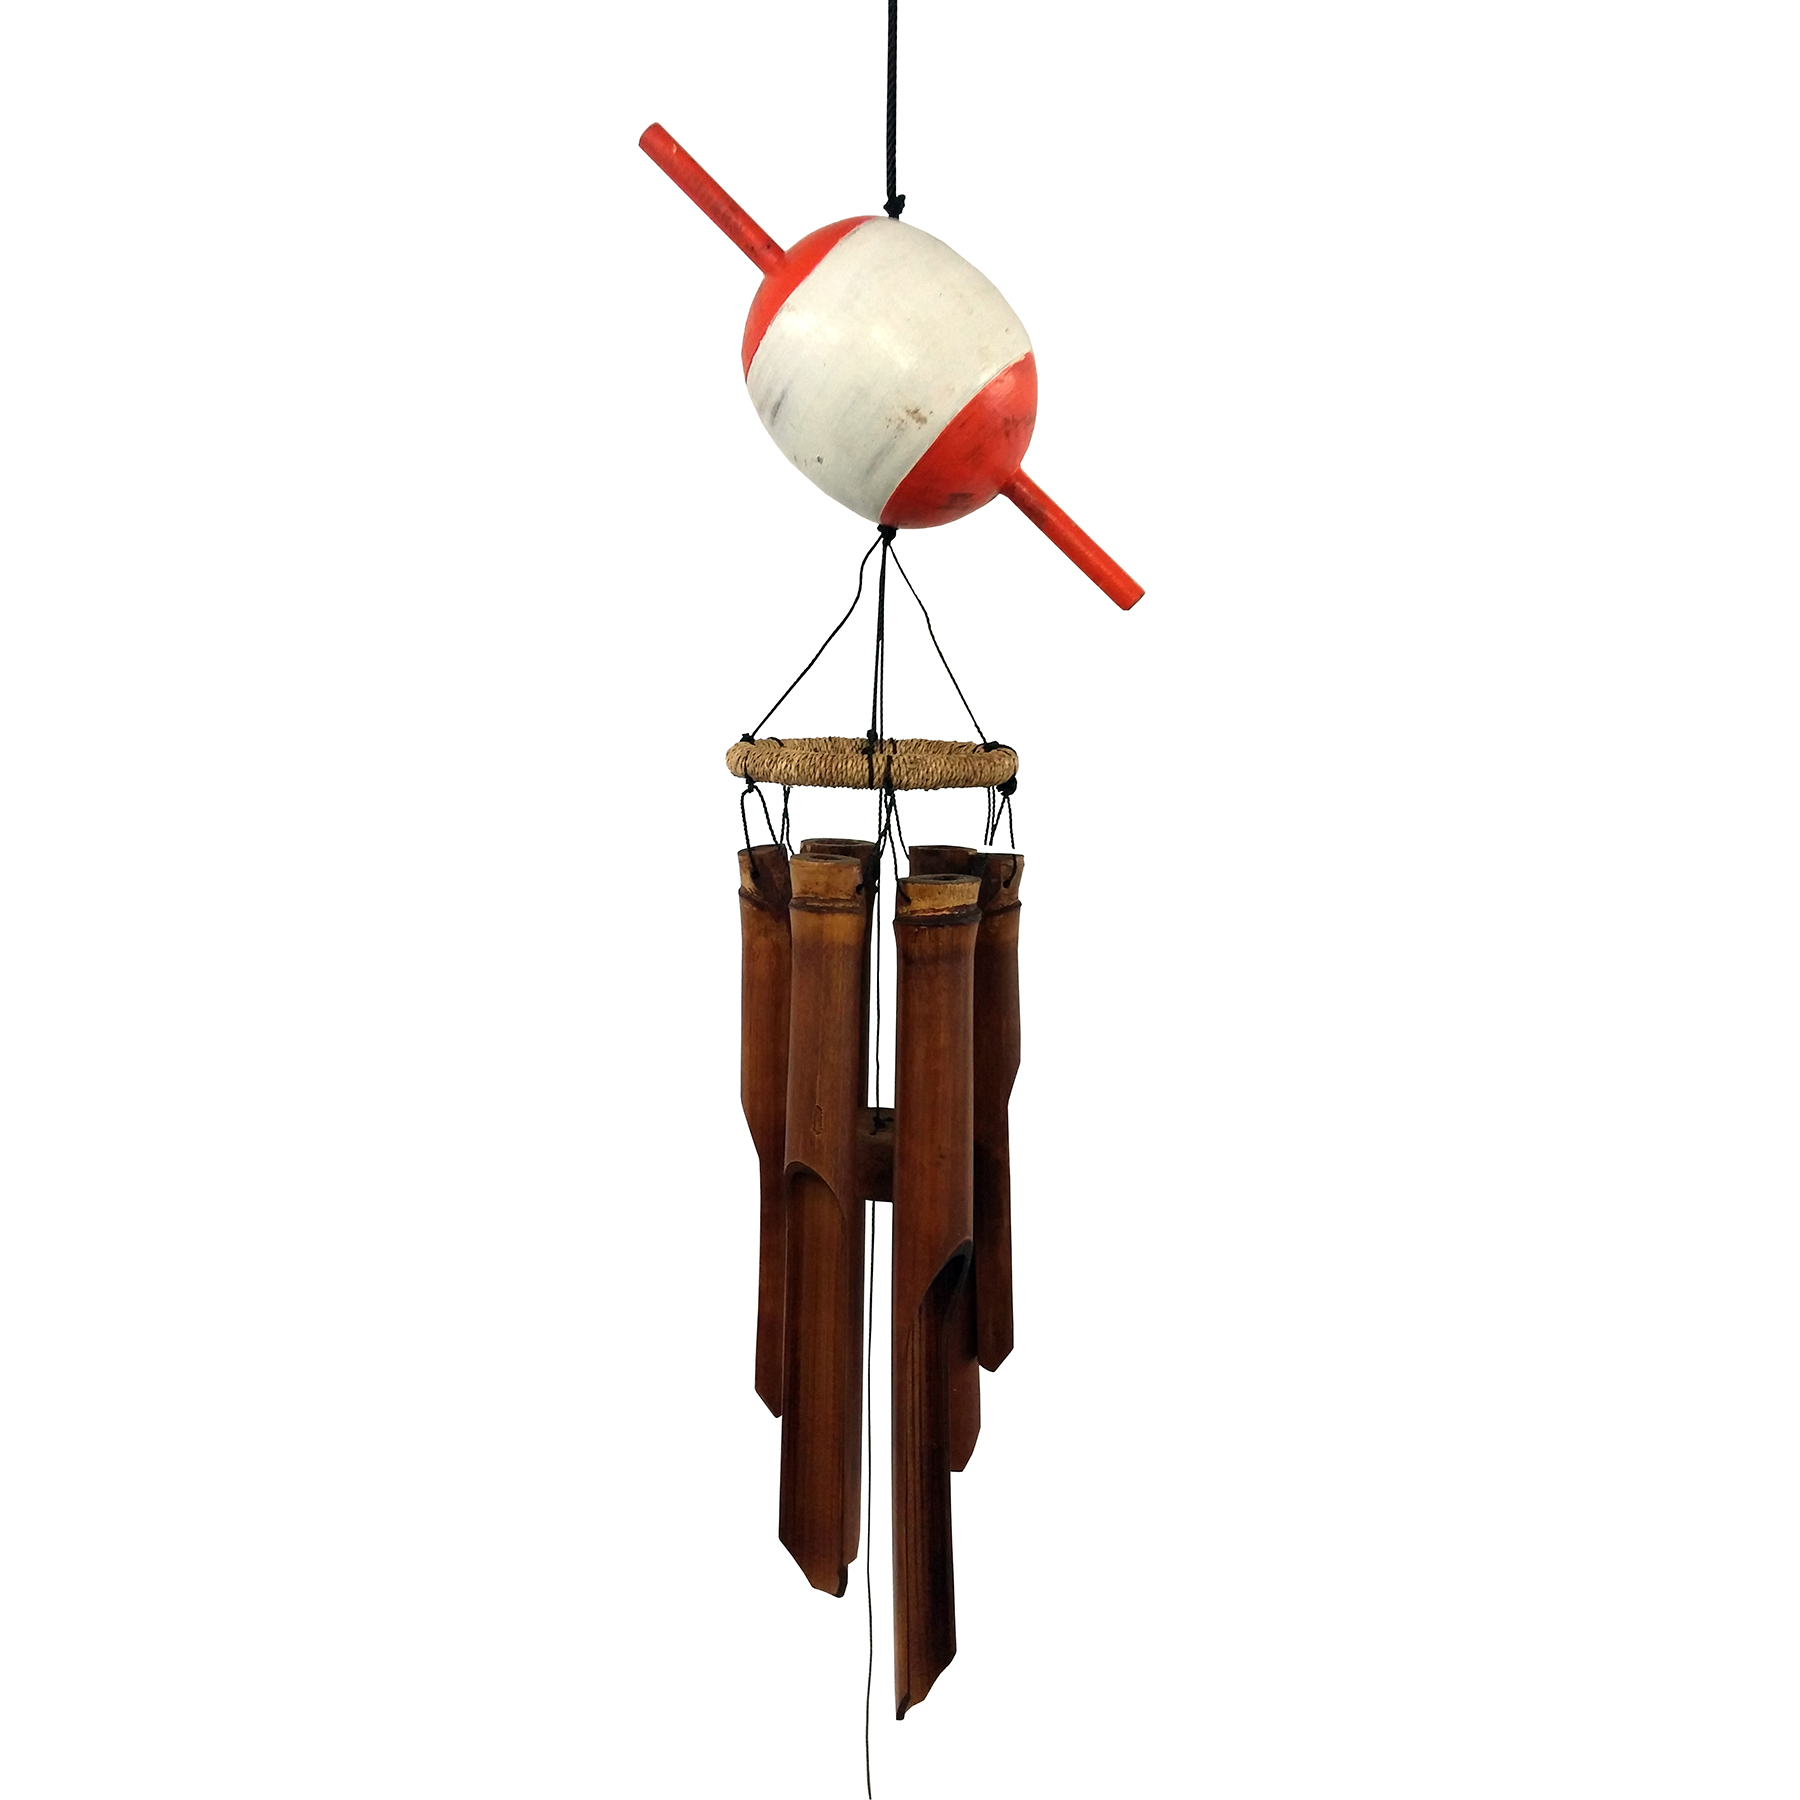 231 - Fish Float Bamboo Wind Chime